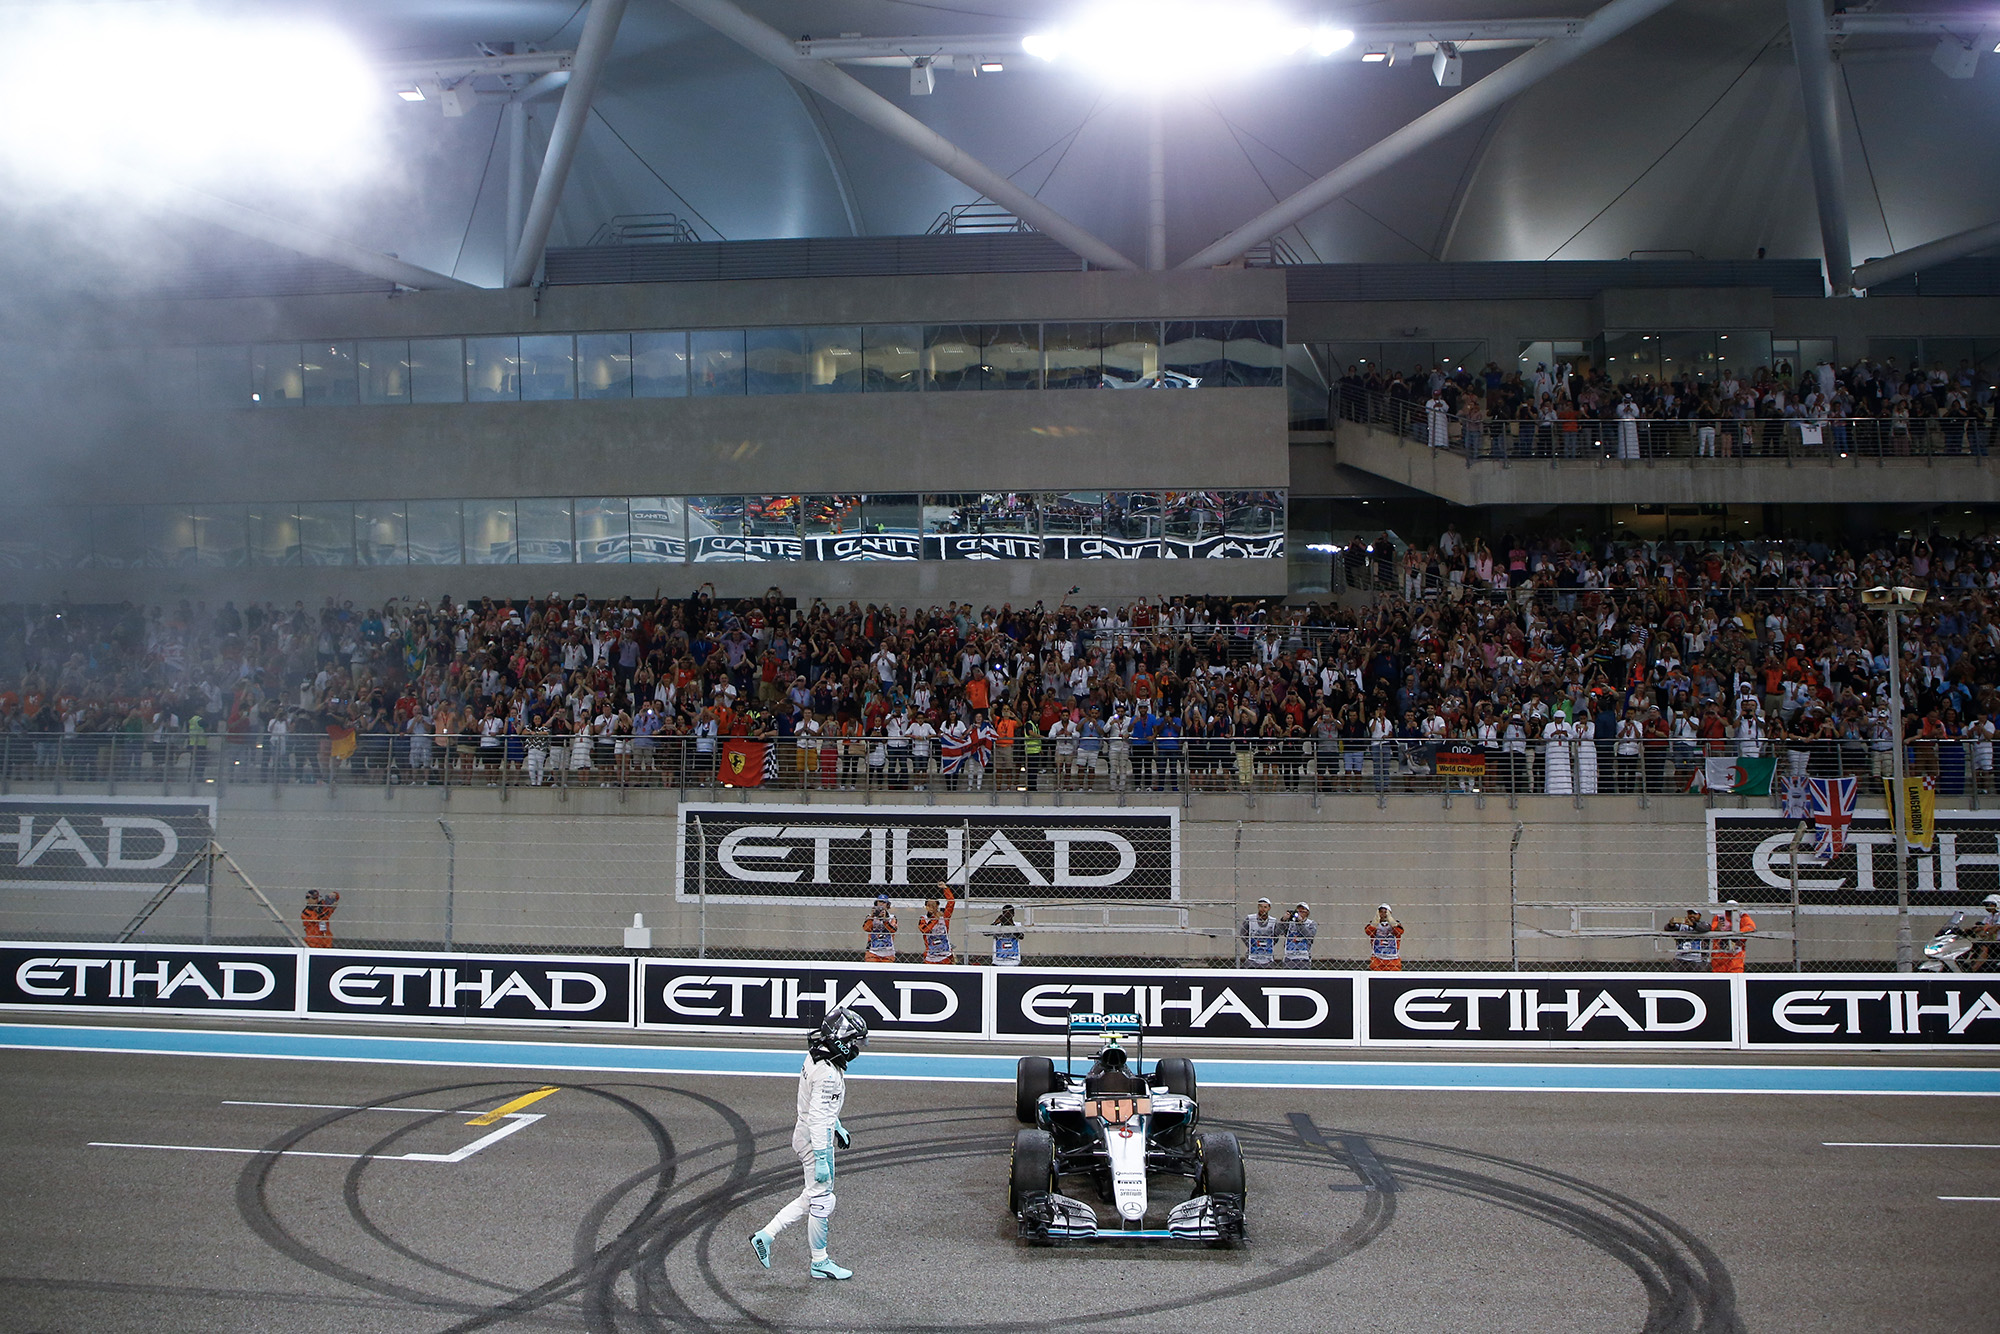 Nico Rosberg celebrates winning the 2016 F1 championship at the Abu Dhabi Grand Prix